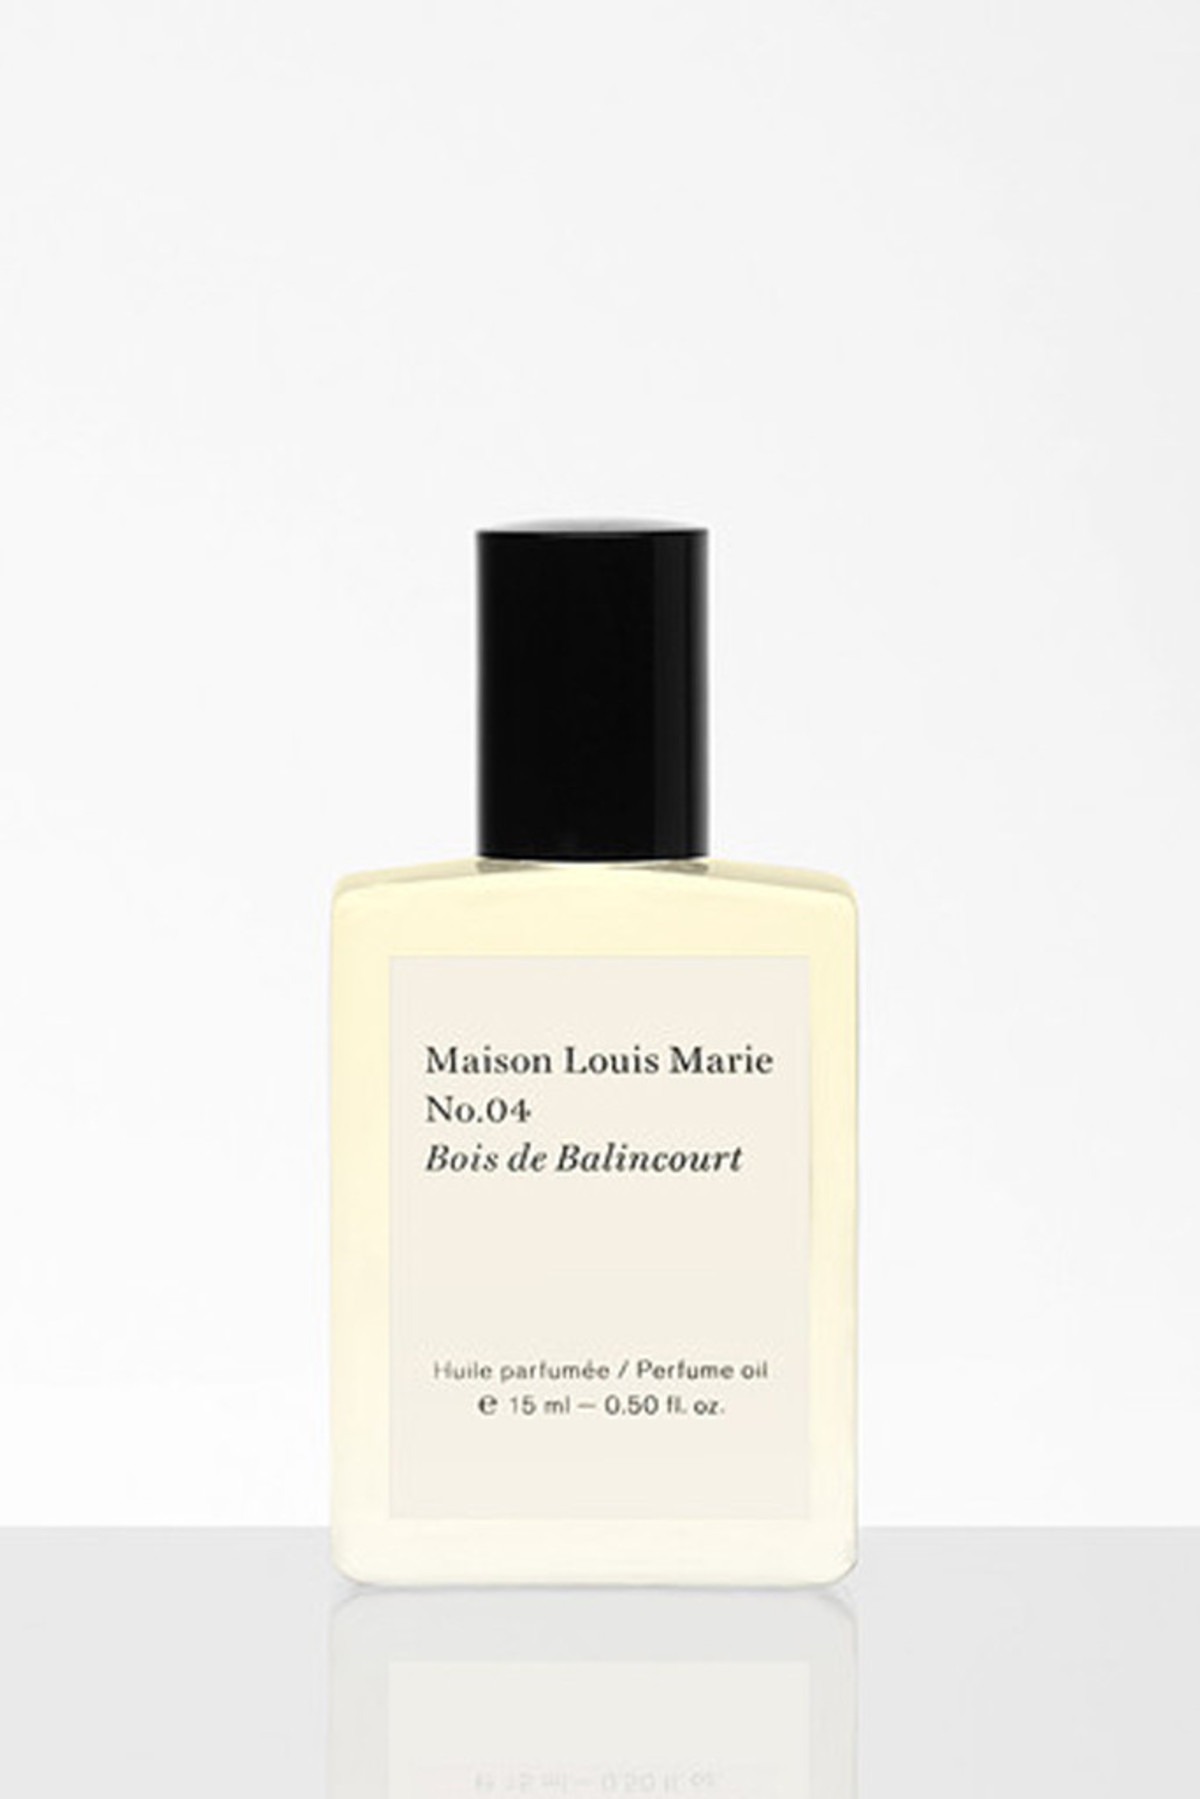 maison louis marie bois de balincourt perfume oil garmentory. Black Bedroom Furniture Sets. Home Design Ideas